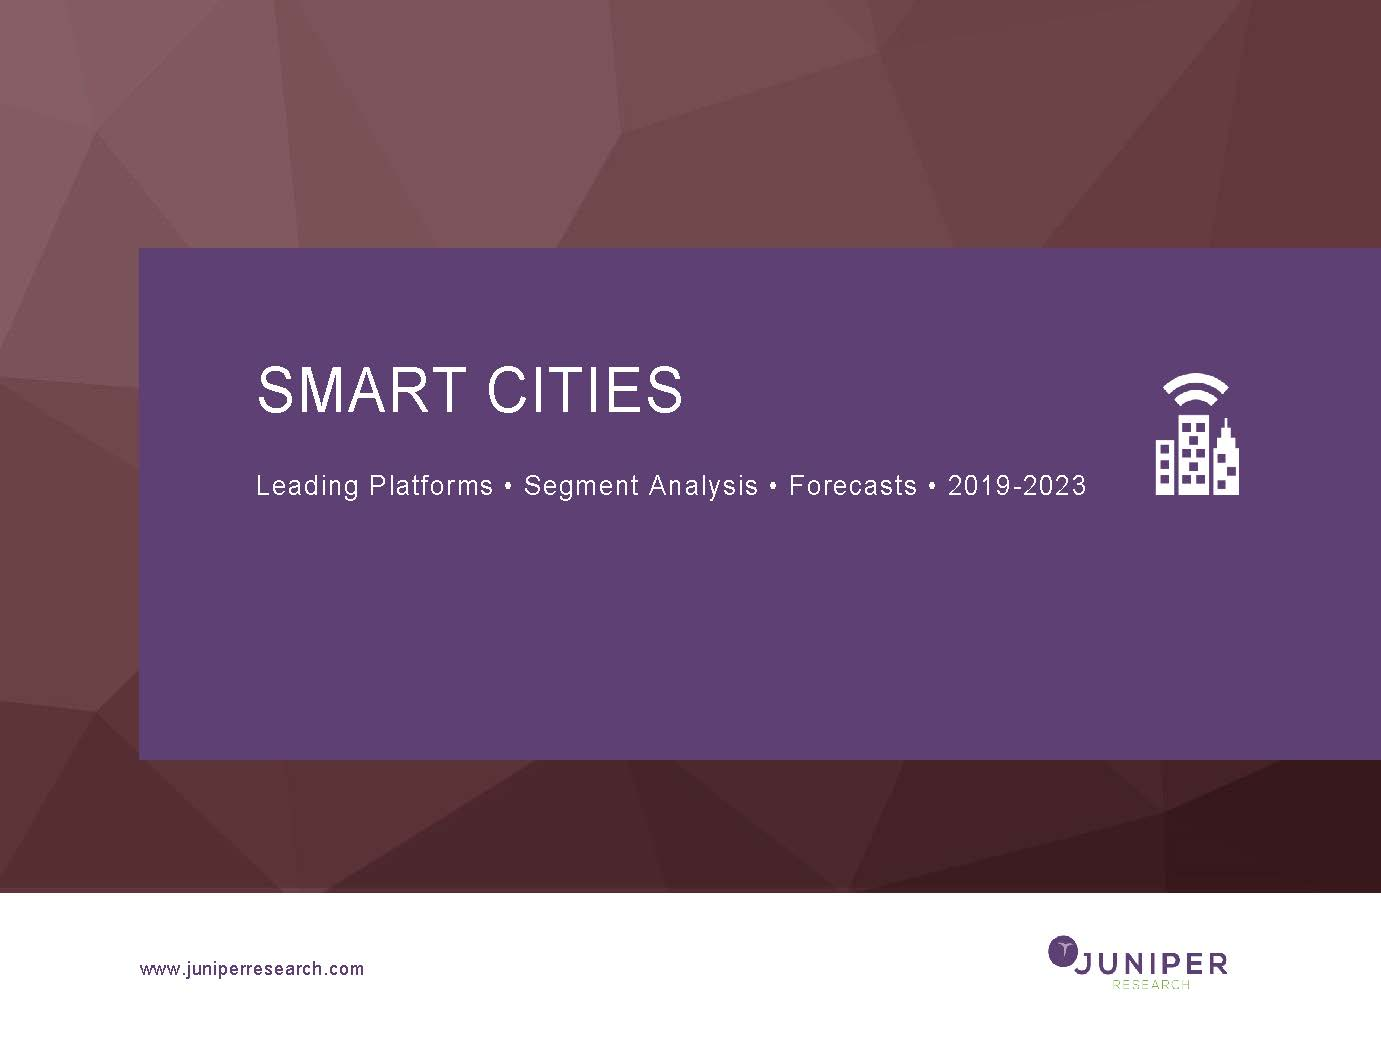 Smart Cities: Leading Platforms, Segment Analysis & Forecasts 2019-2023